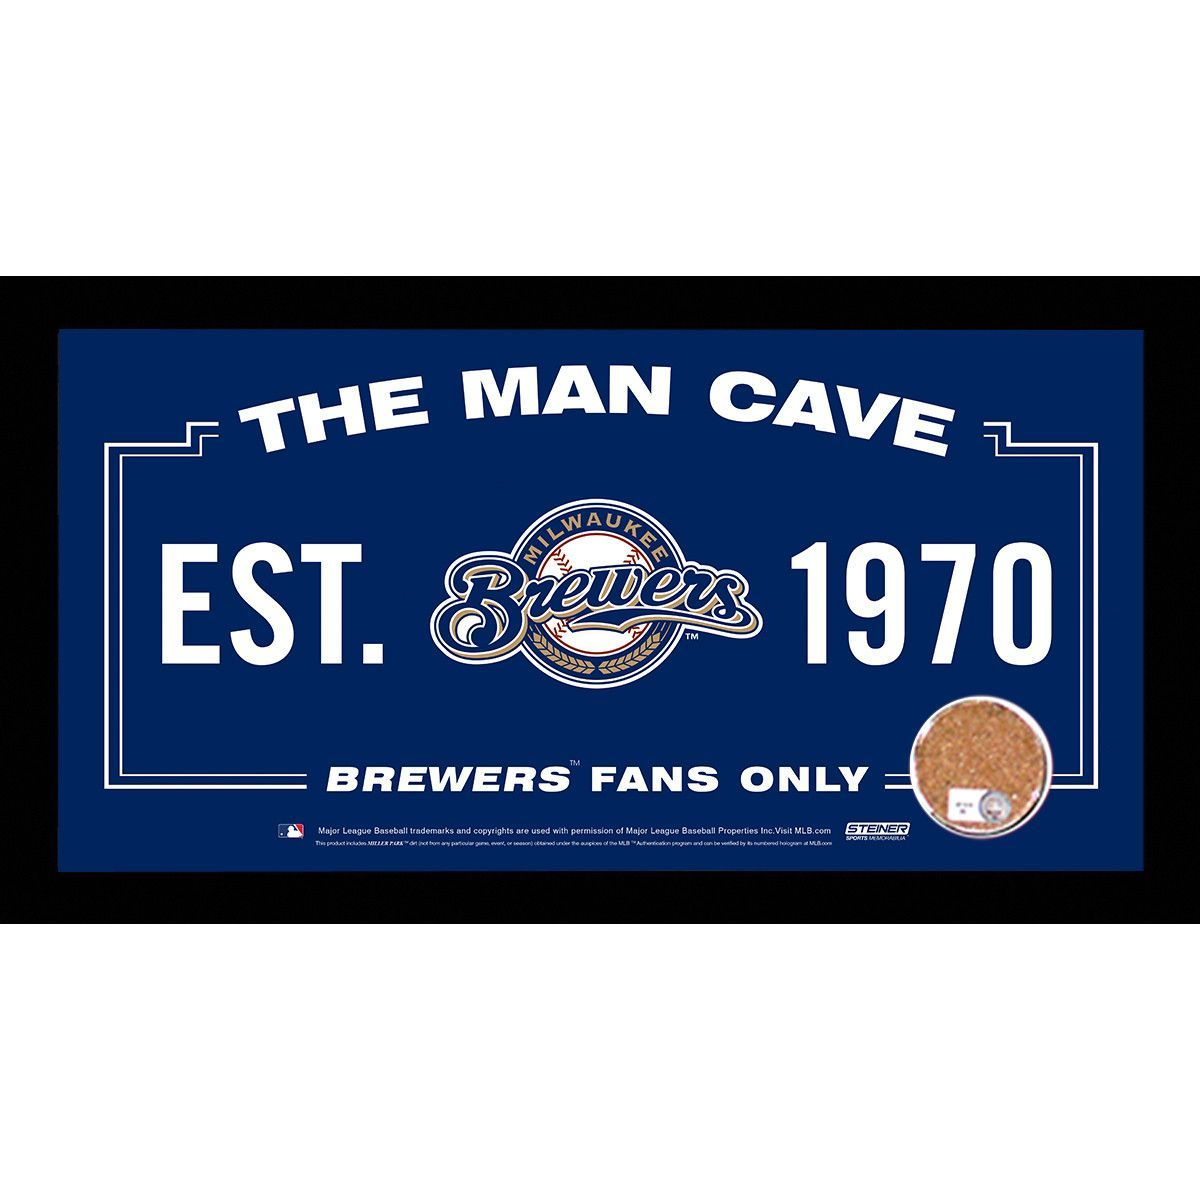 Milwaukee brewers man cave sign 6x12 framed photo with authentic game used dirt mlb